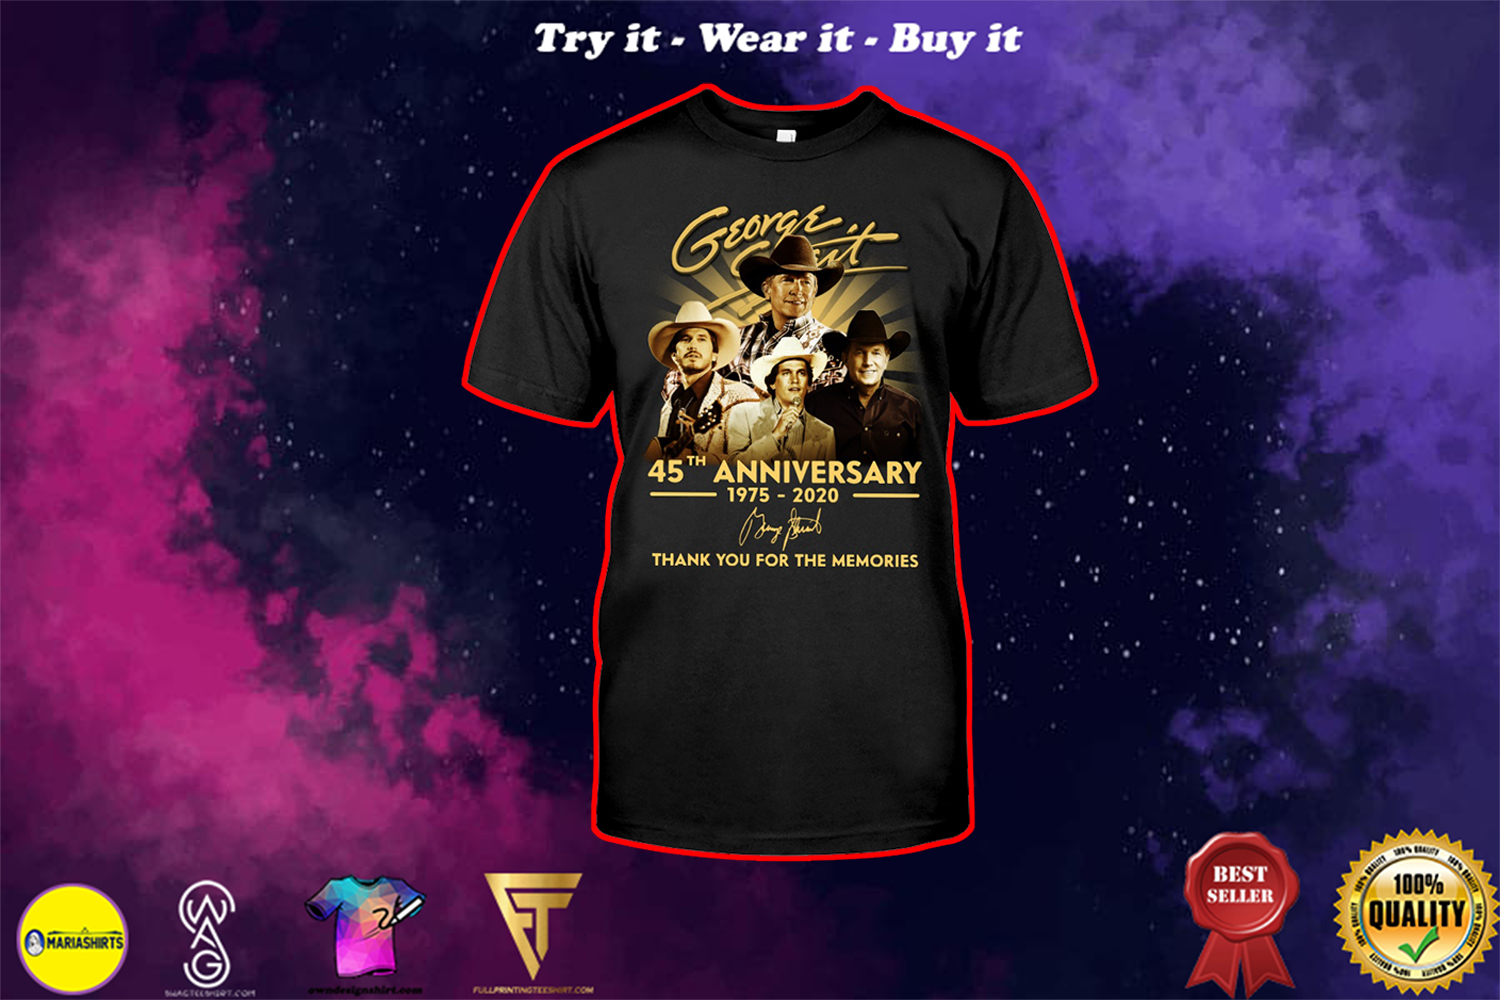 george strait 45th anniversary 1975-2020 thank you for the memories shirt